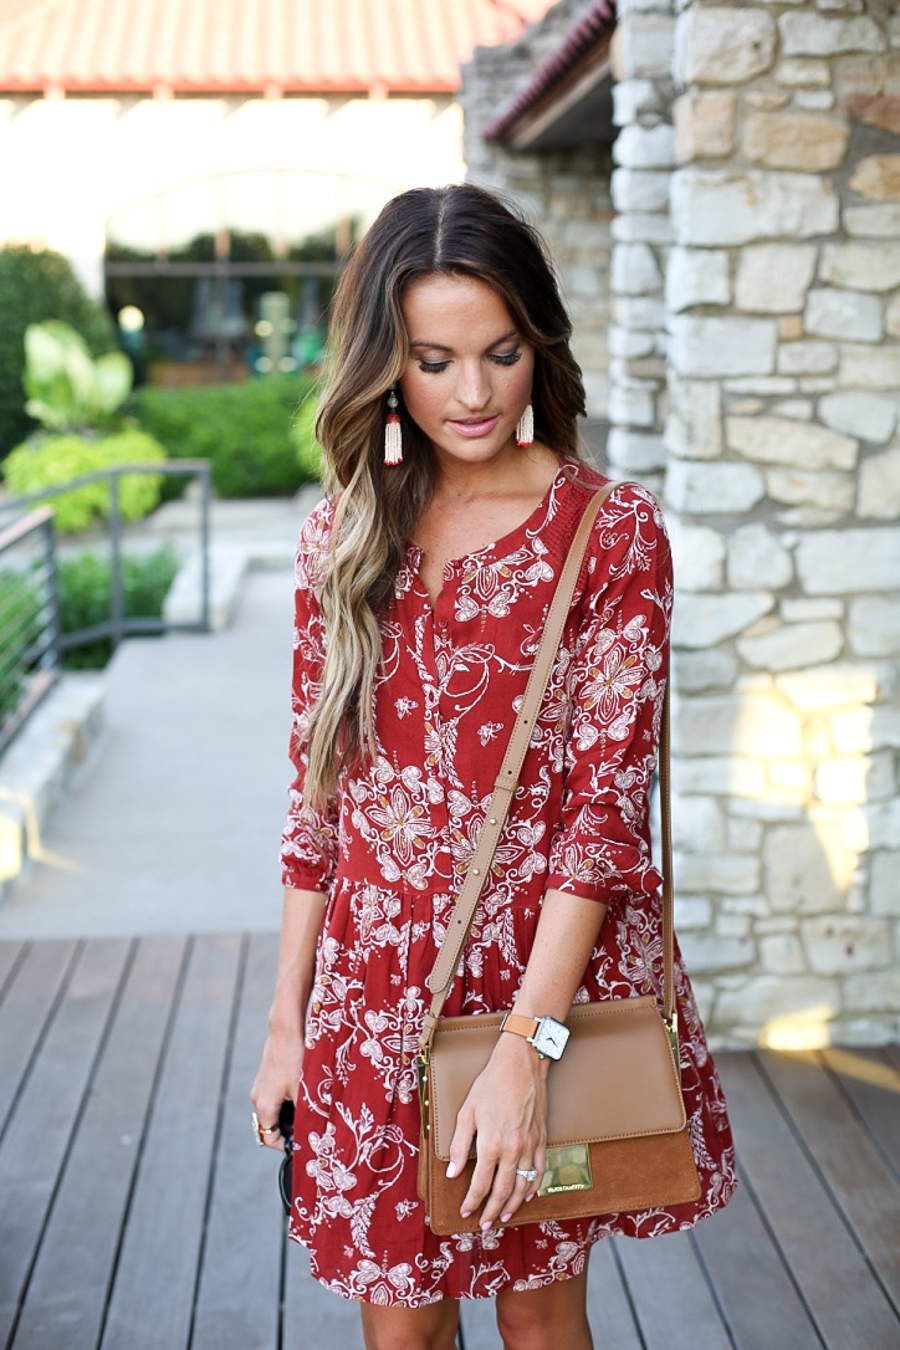 perfect transition dress + suede heels